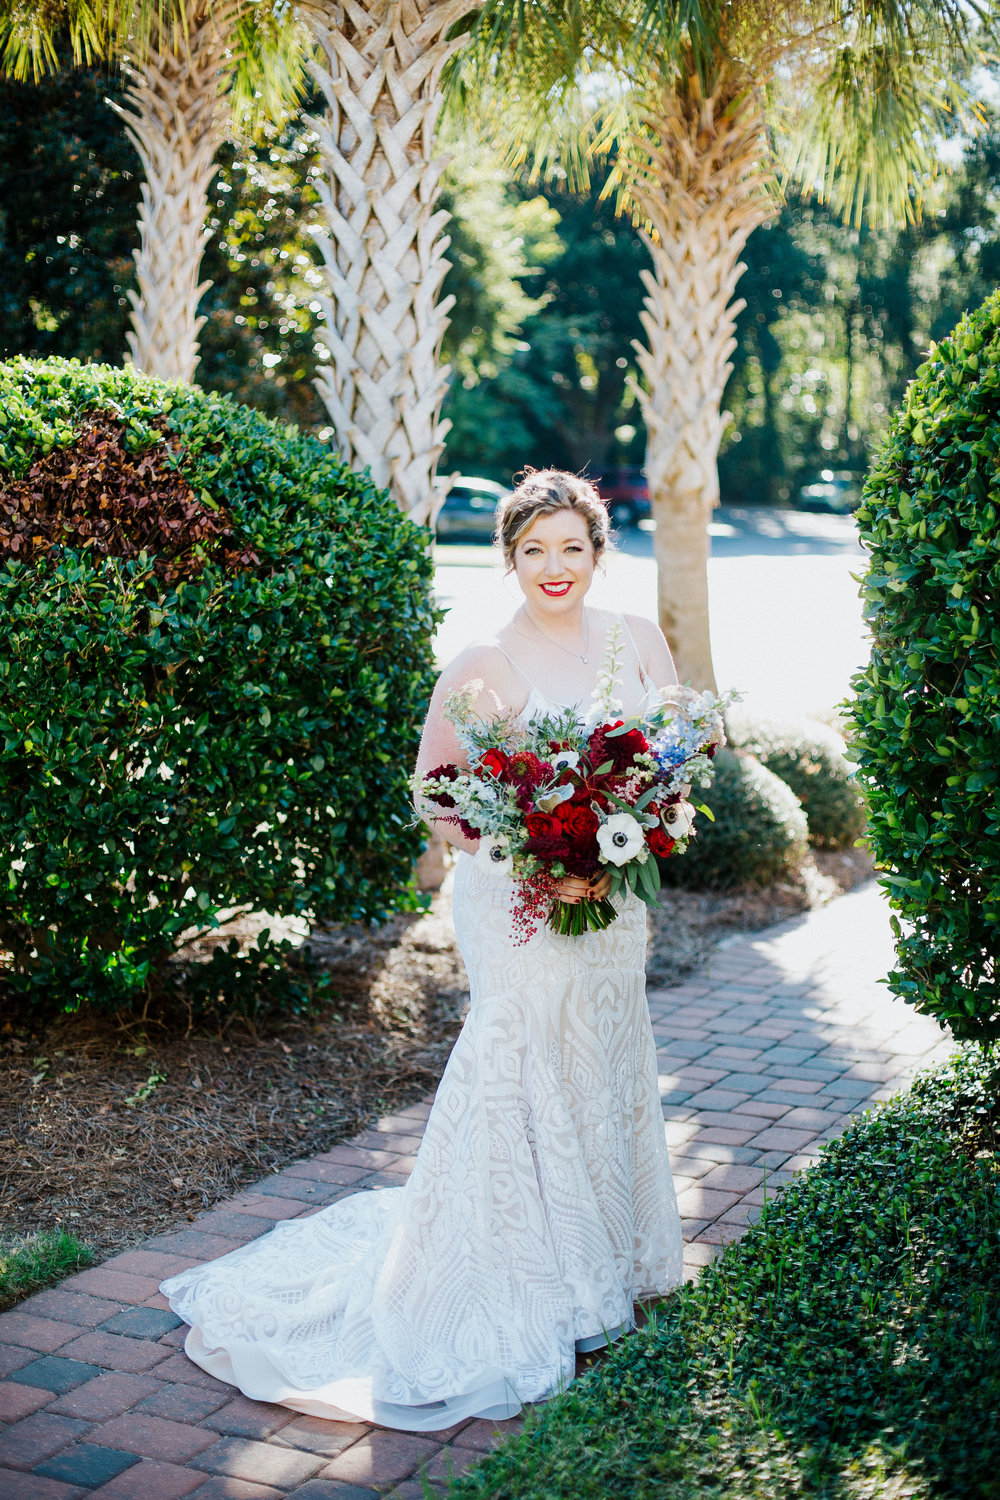 MARY KATE'S 'MURICA THEMED PLANTATION WEDDING